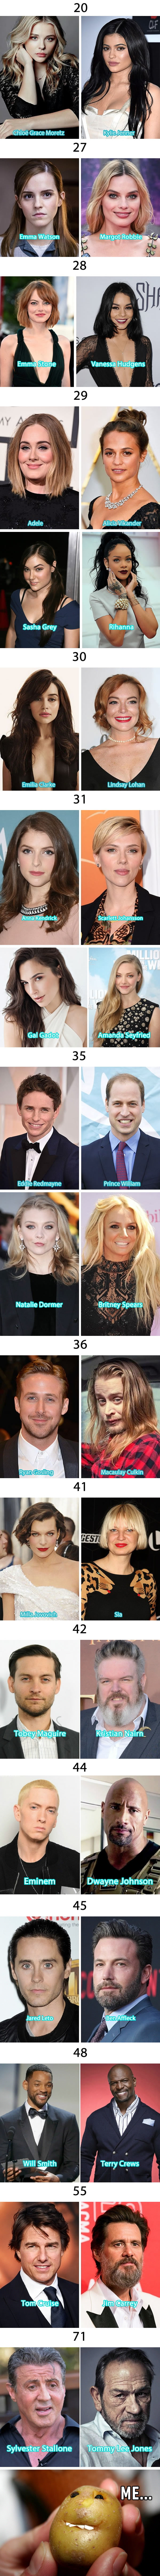 18 Pairs Of Celebrities That Are Surprisingly At The Same Age